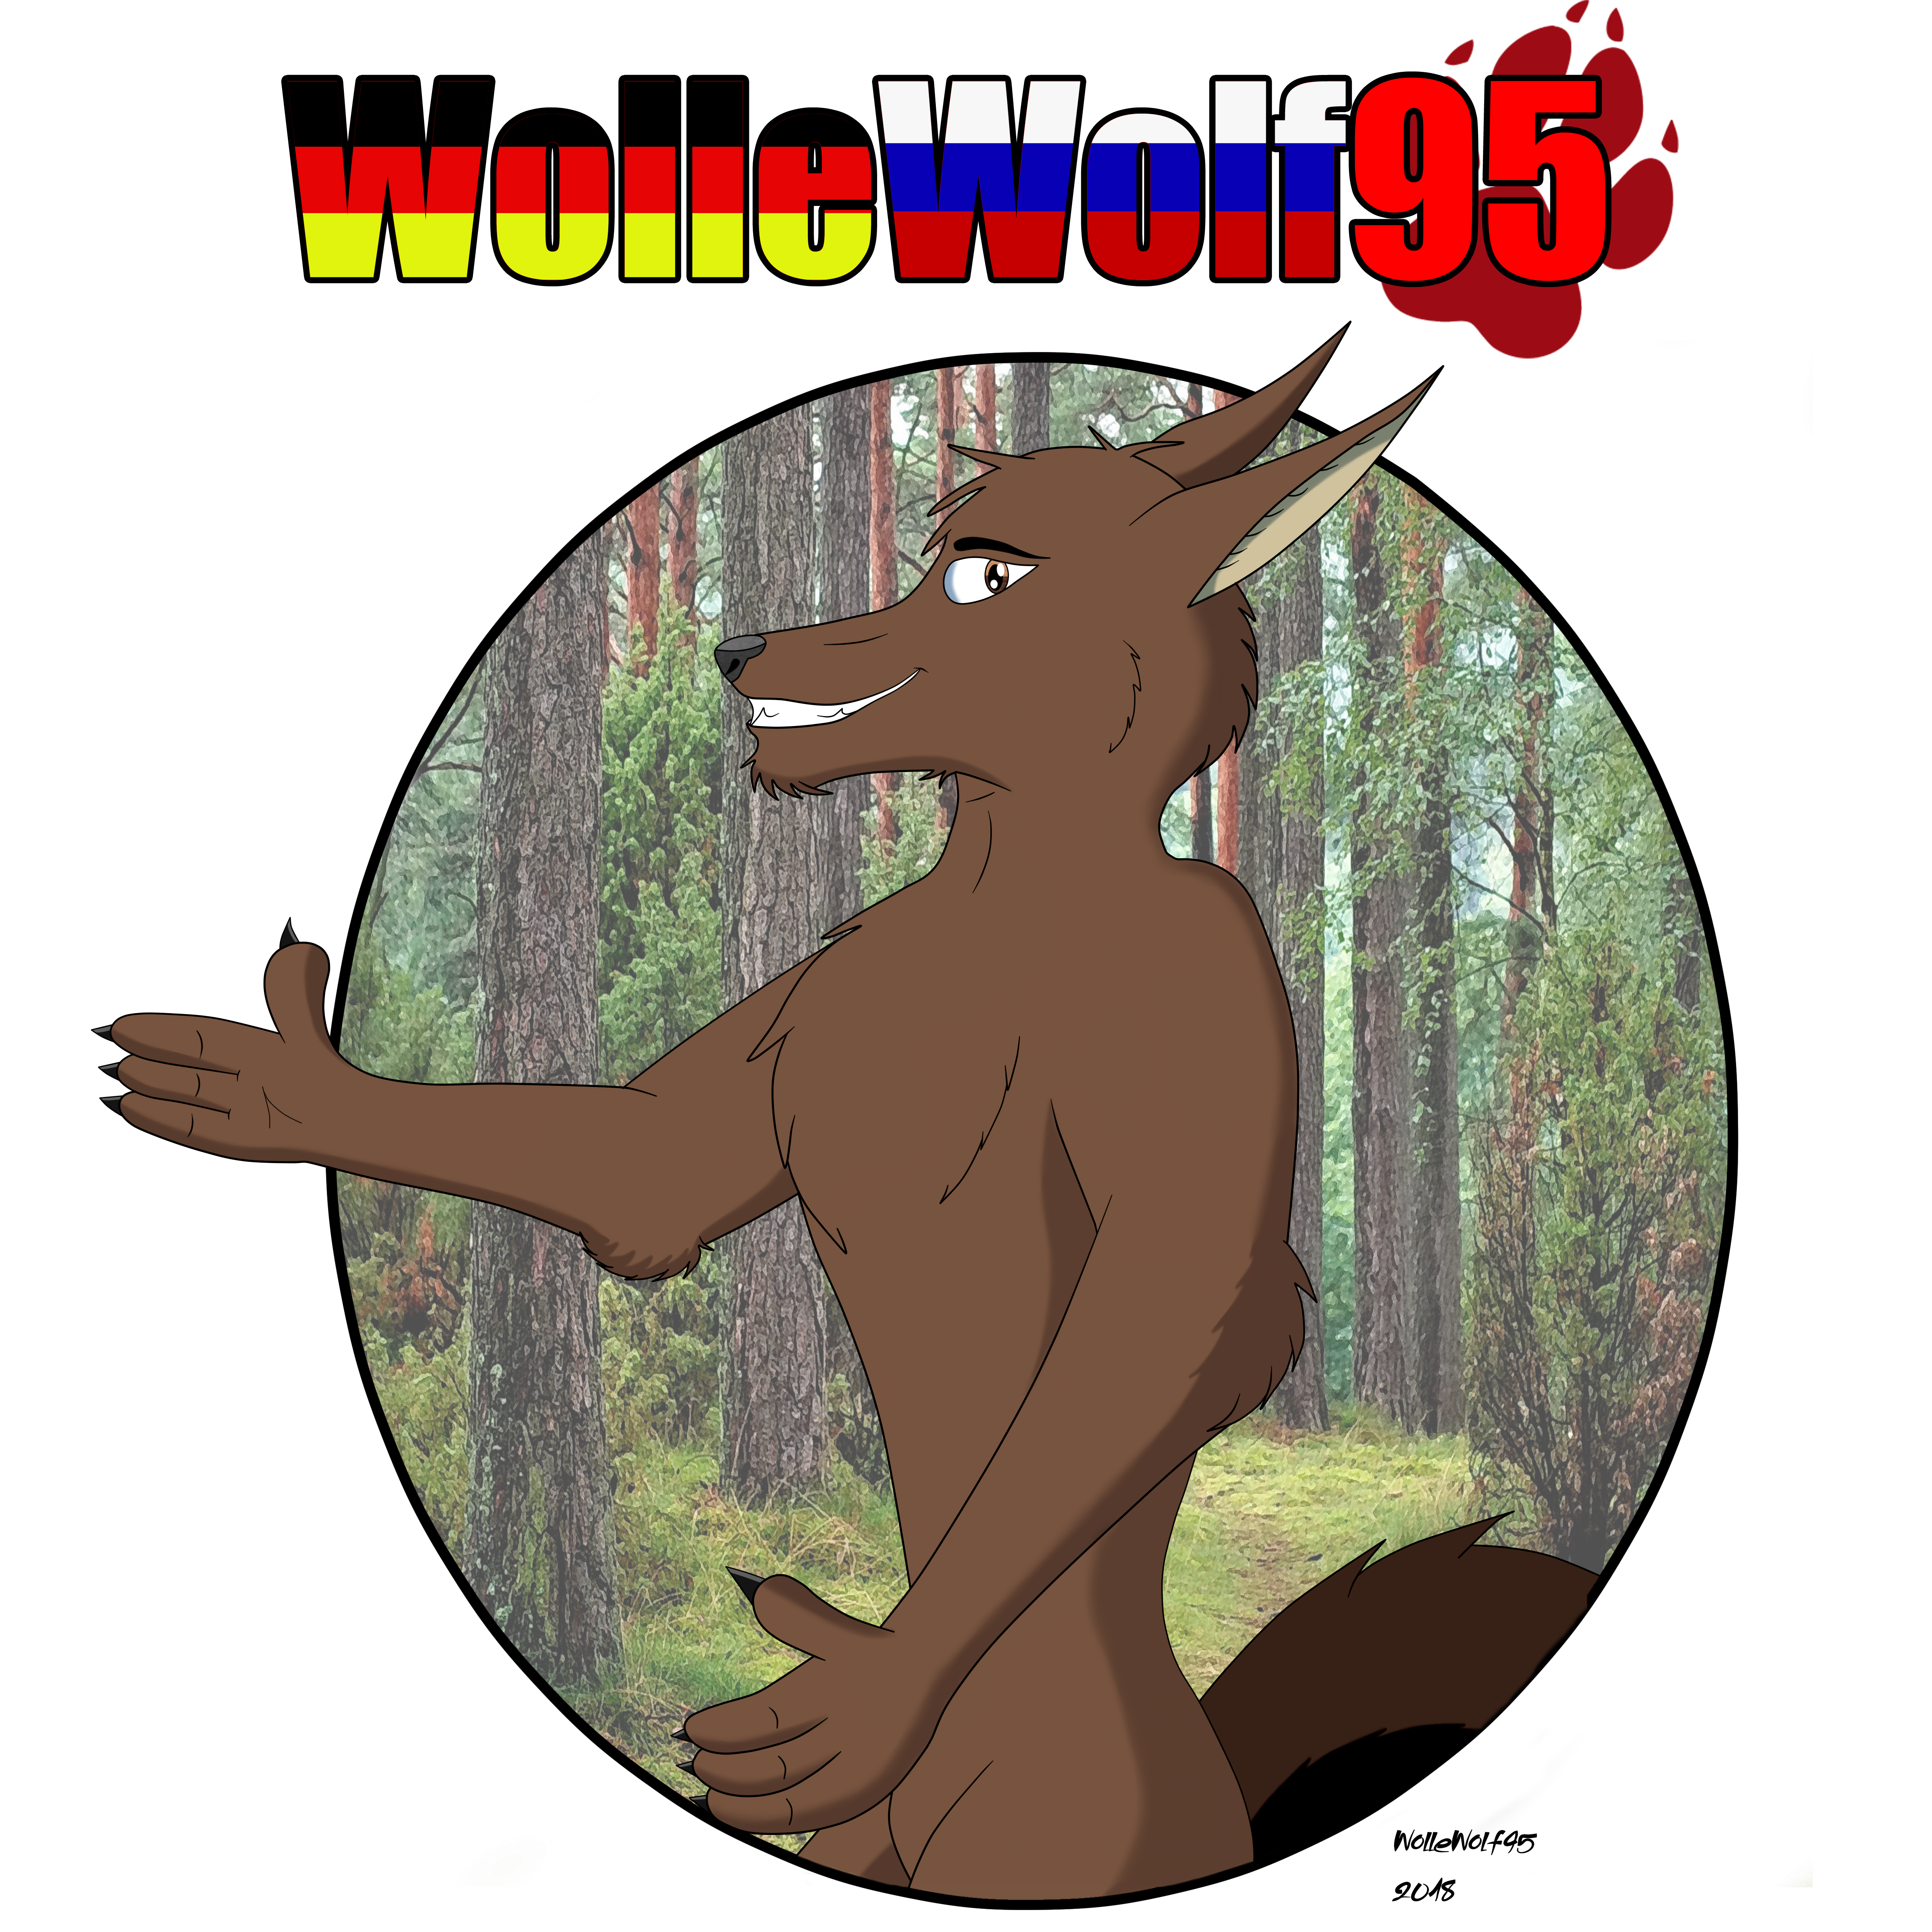 WolleWolf95's Profile Picture